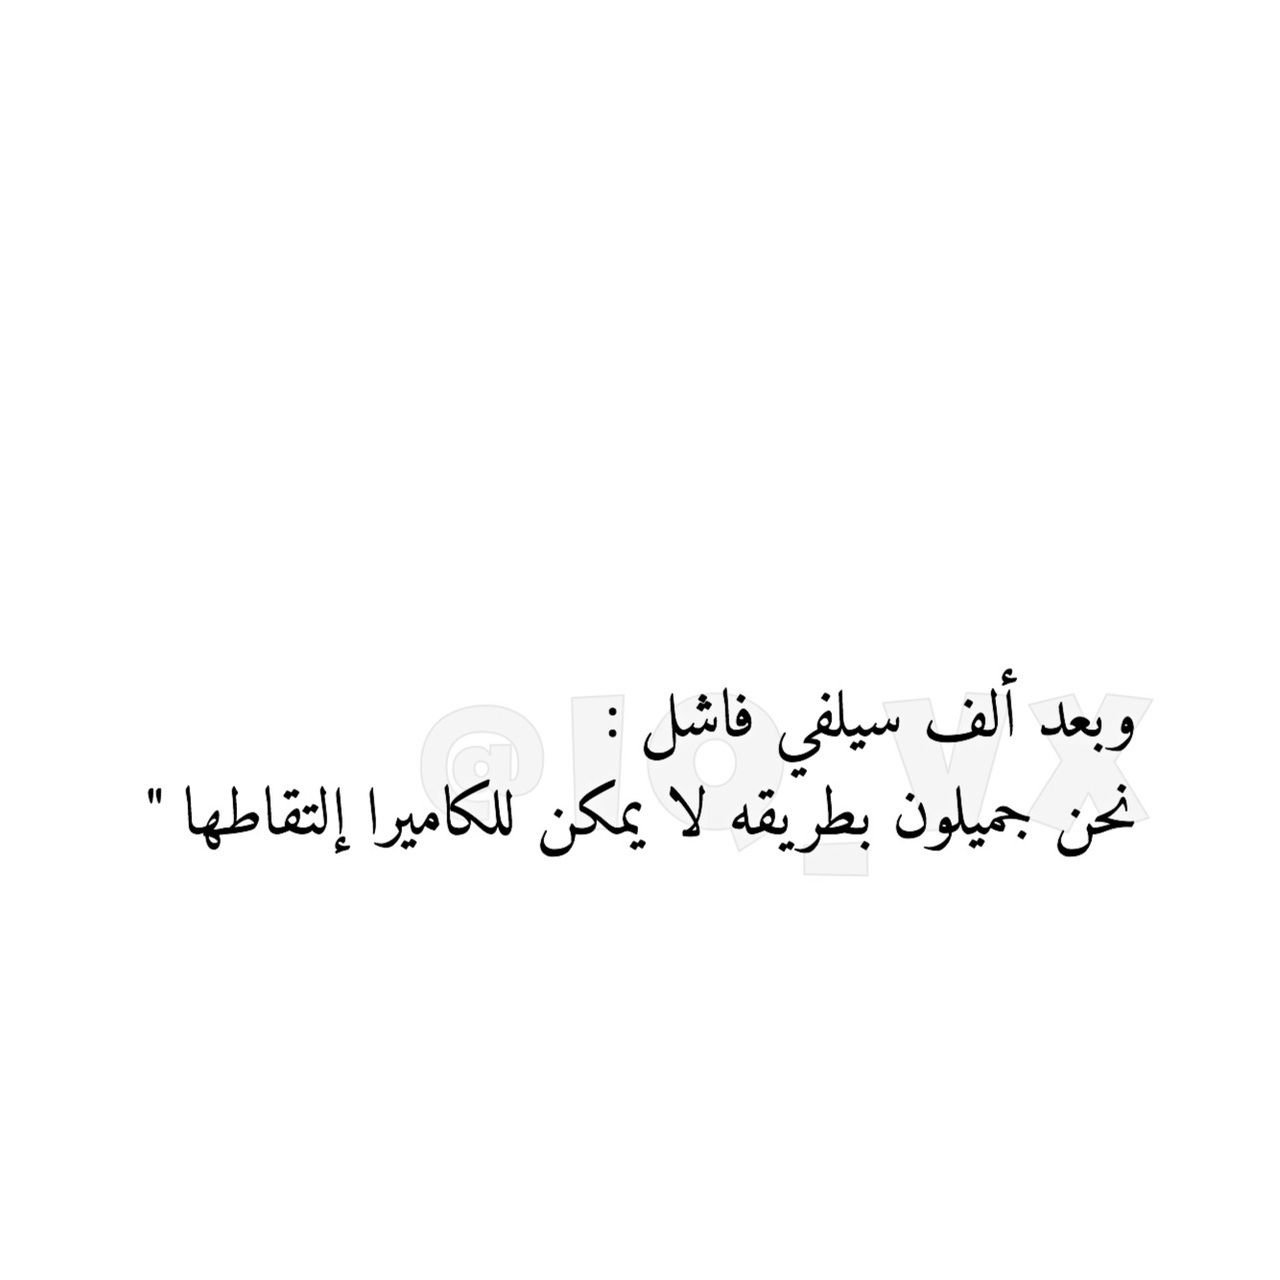 Ana More 100 Selfie Wa7ad Mnham Masala7 Words Quotes Good Quotes For Instagram Funny Arabic Quotes